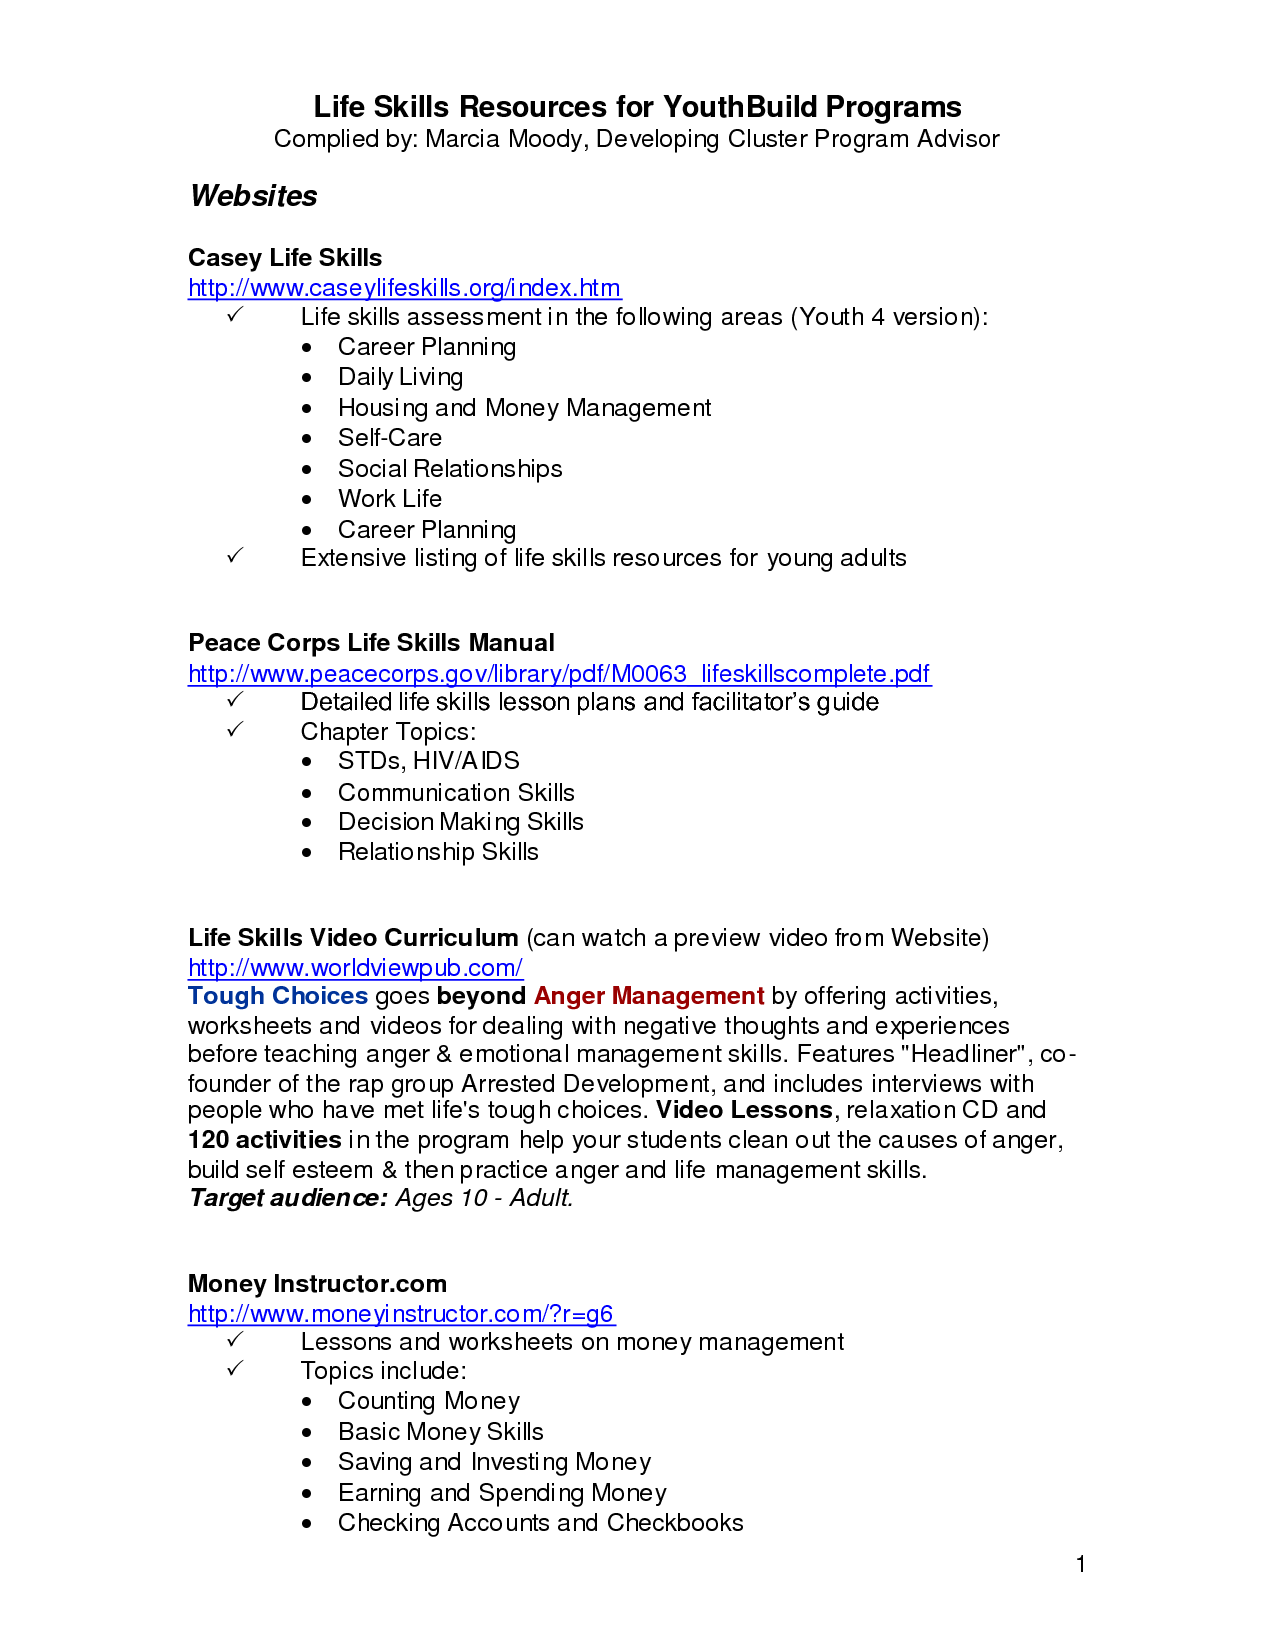 Worksheets On Money Management Skills